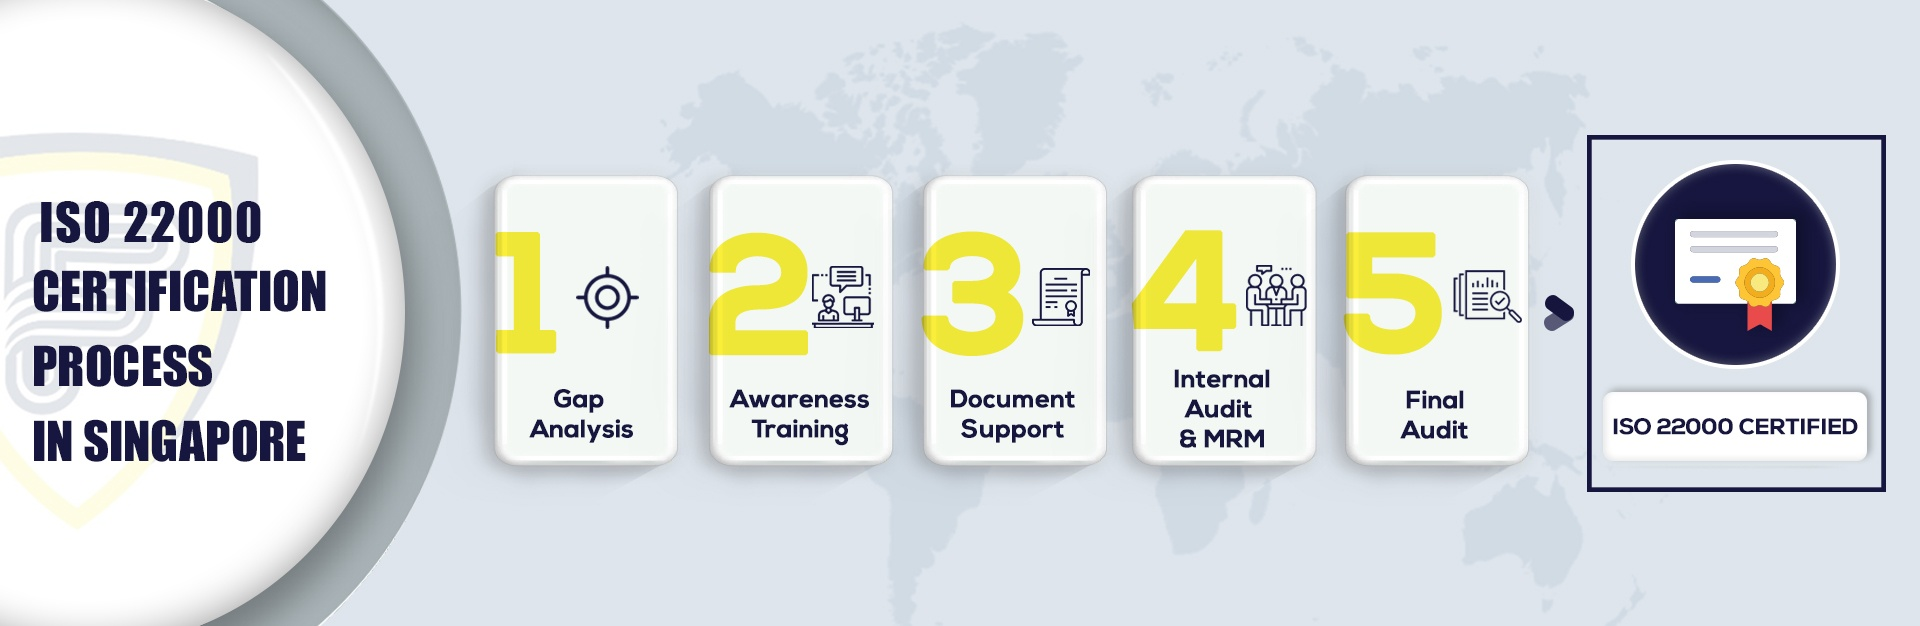 ISO 22000 certification in Singapore